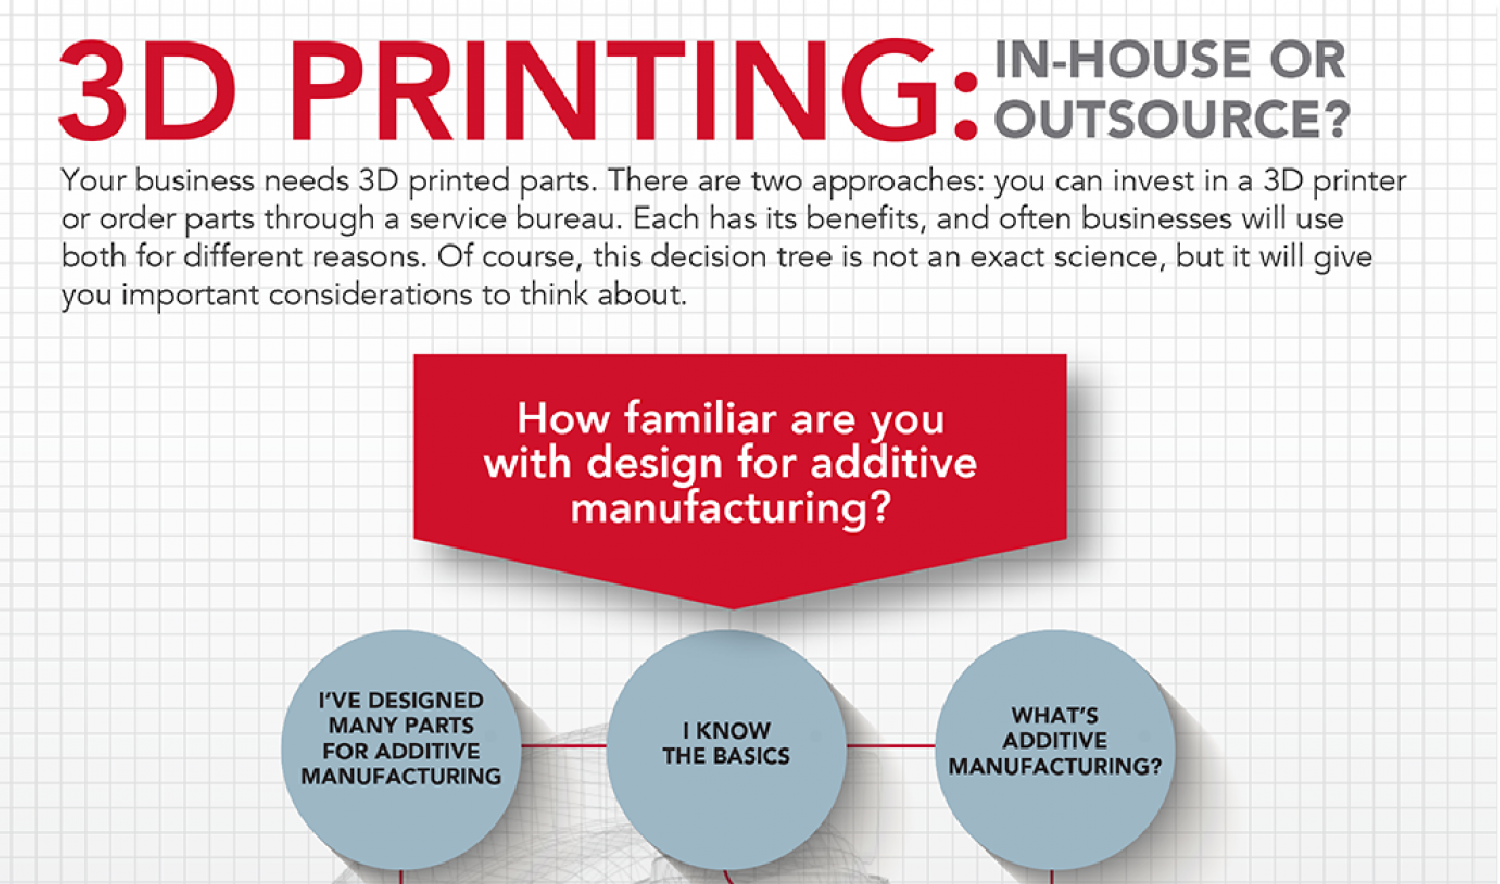 3D Printing: In-house or Outsource Infographic